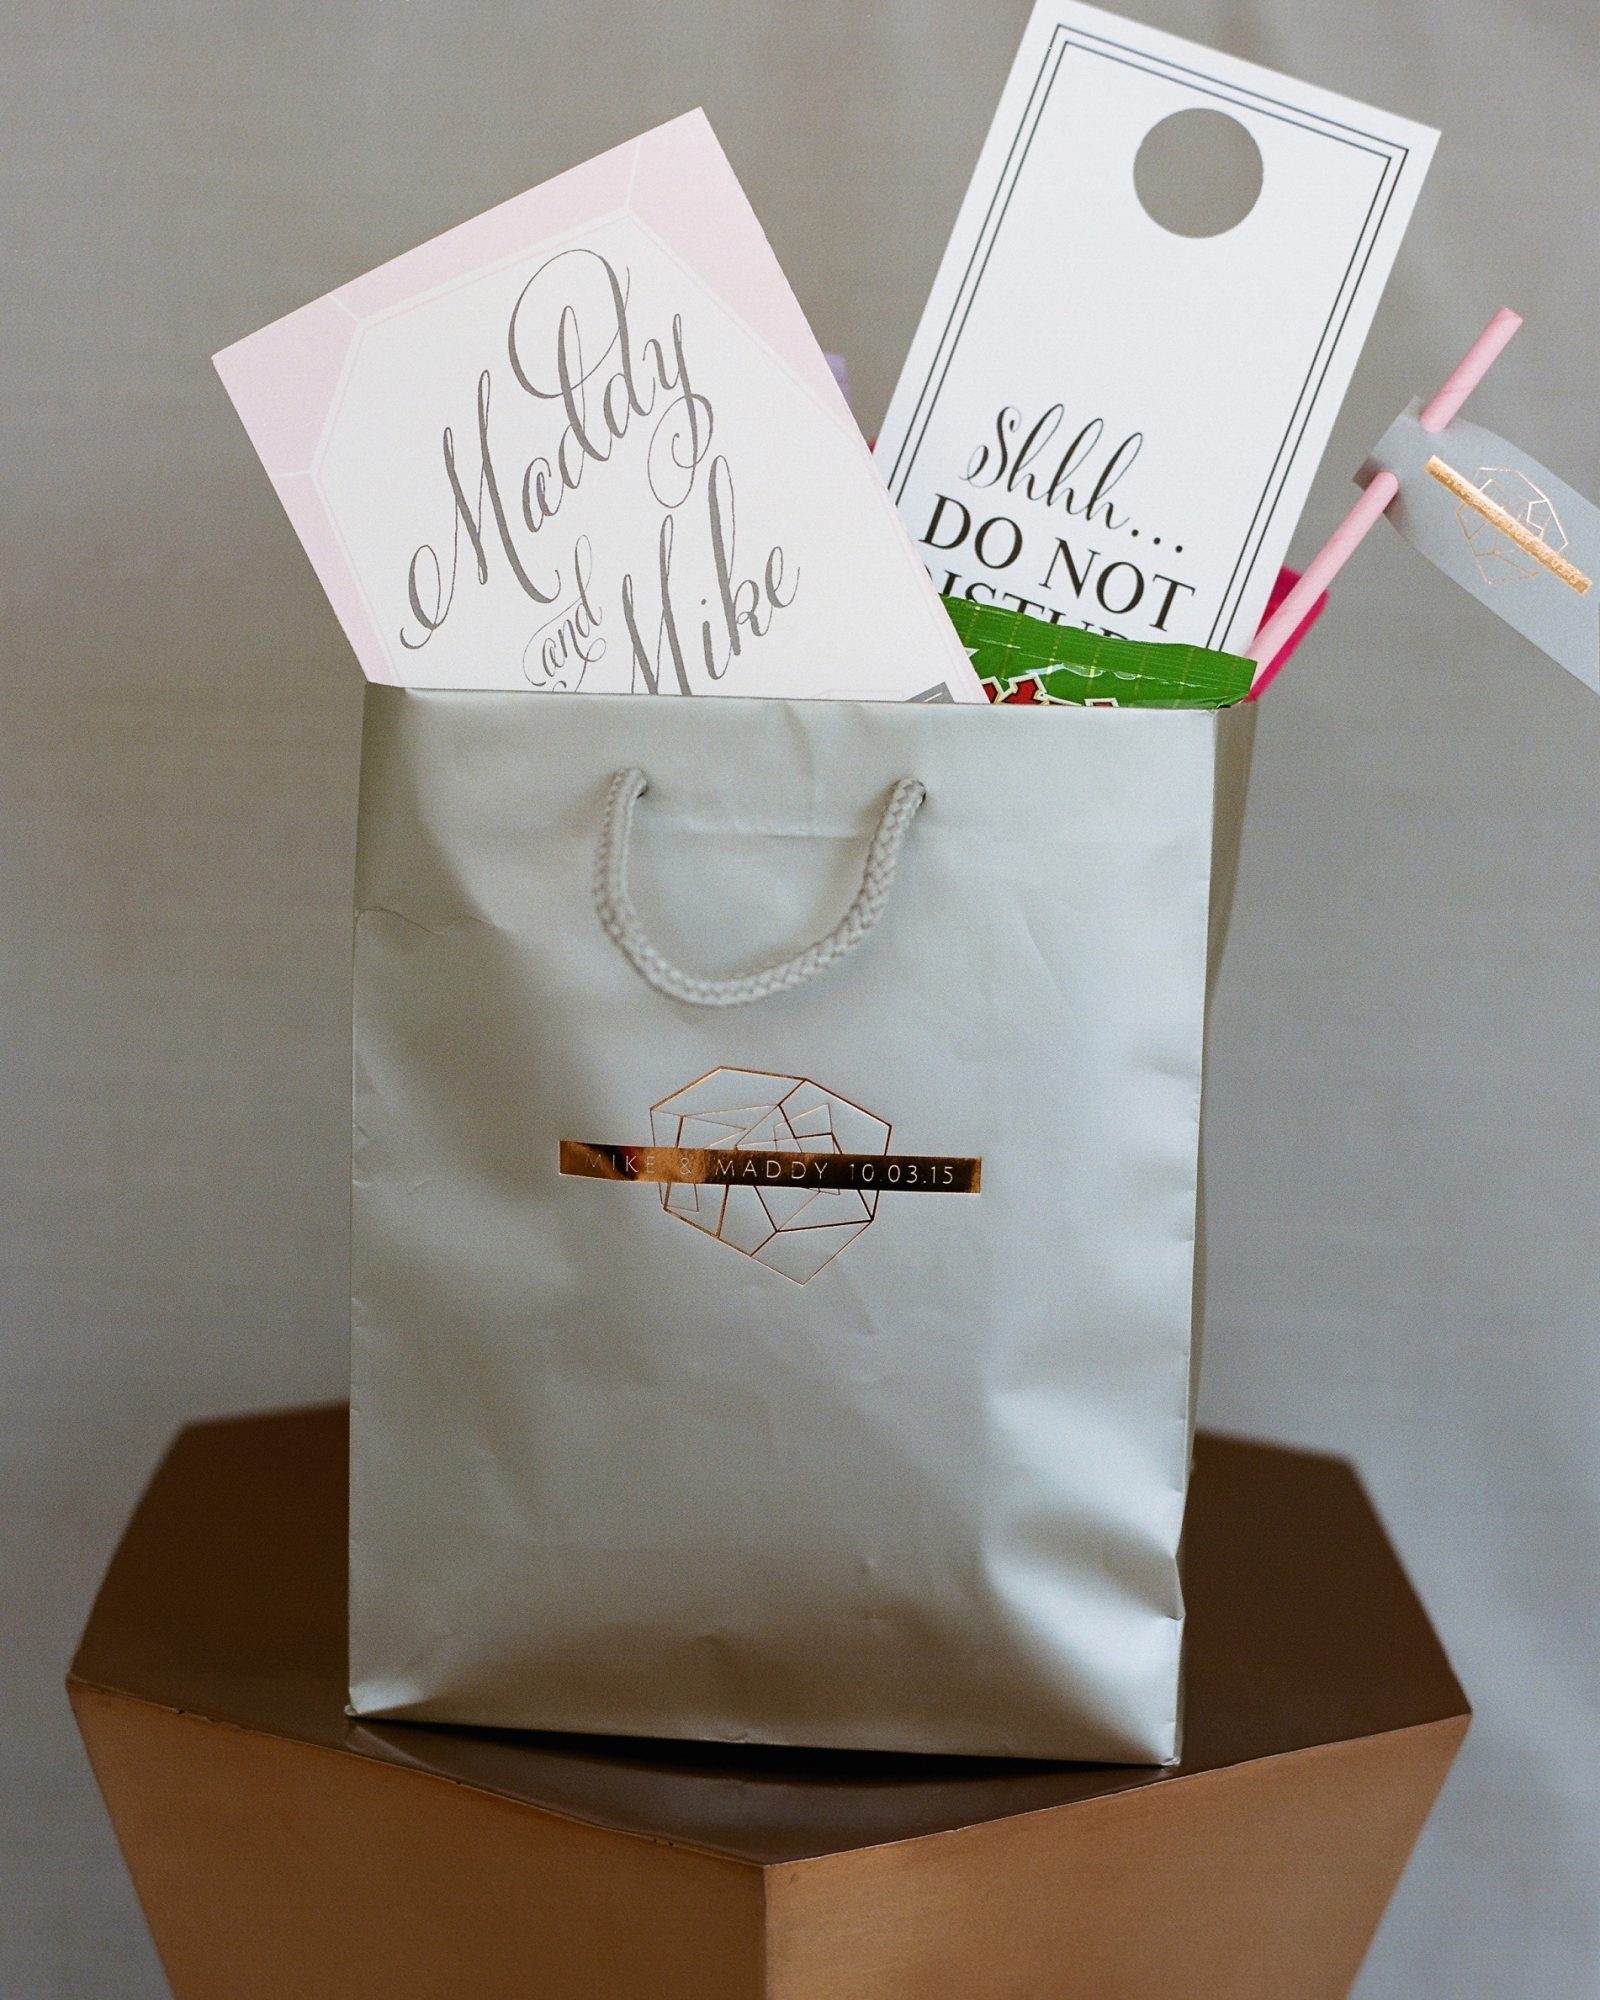 maddy-mike-wedding-welcomebag-005.9779.04c.2015.49-6134174-0716.jpg